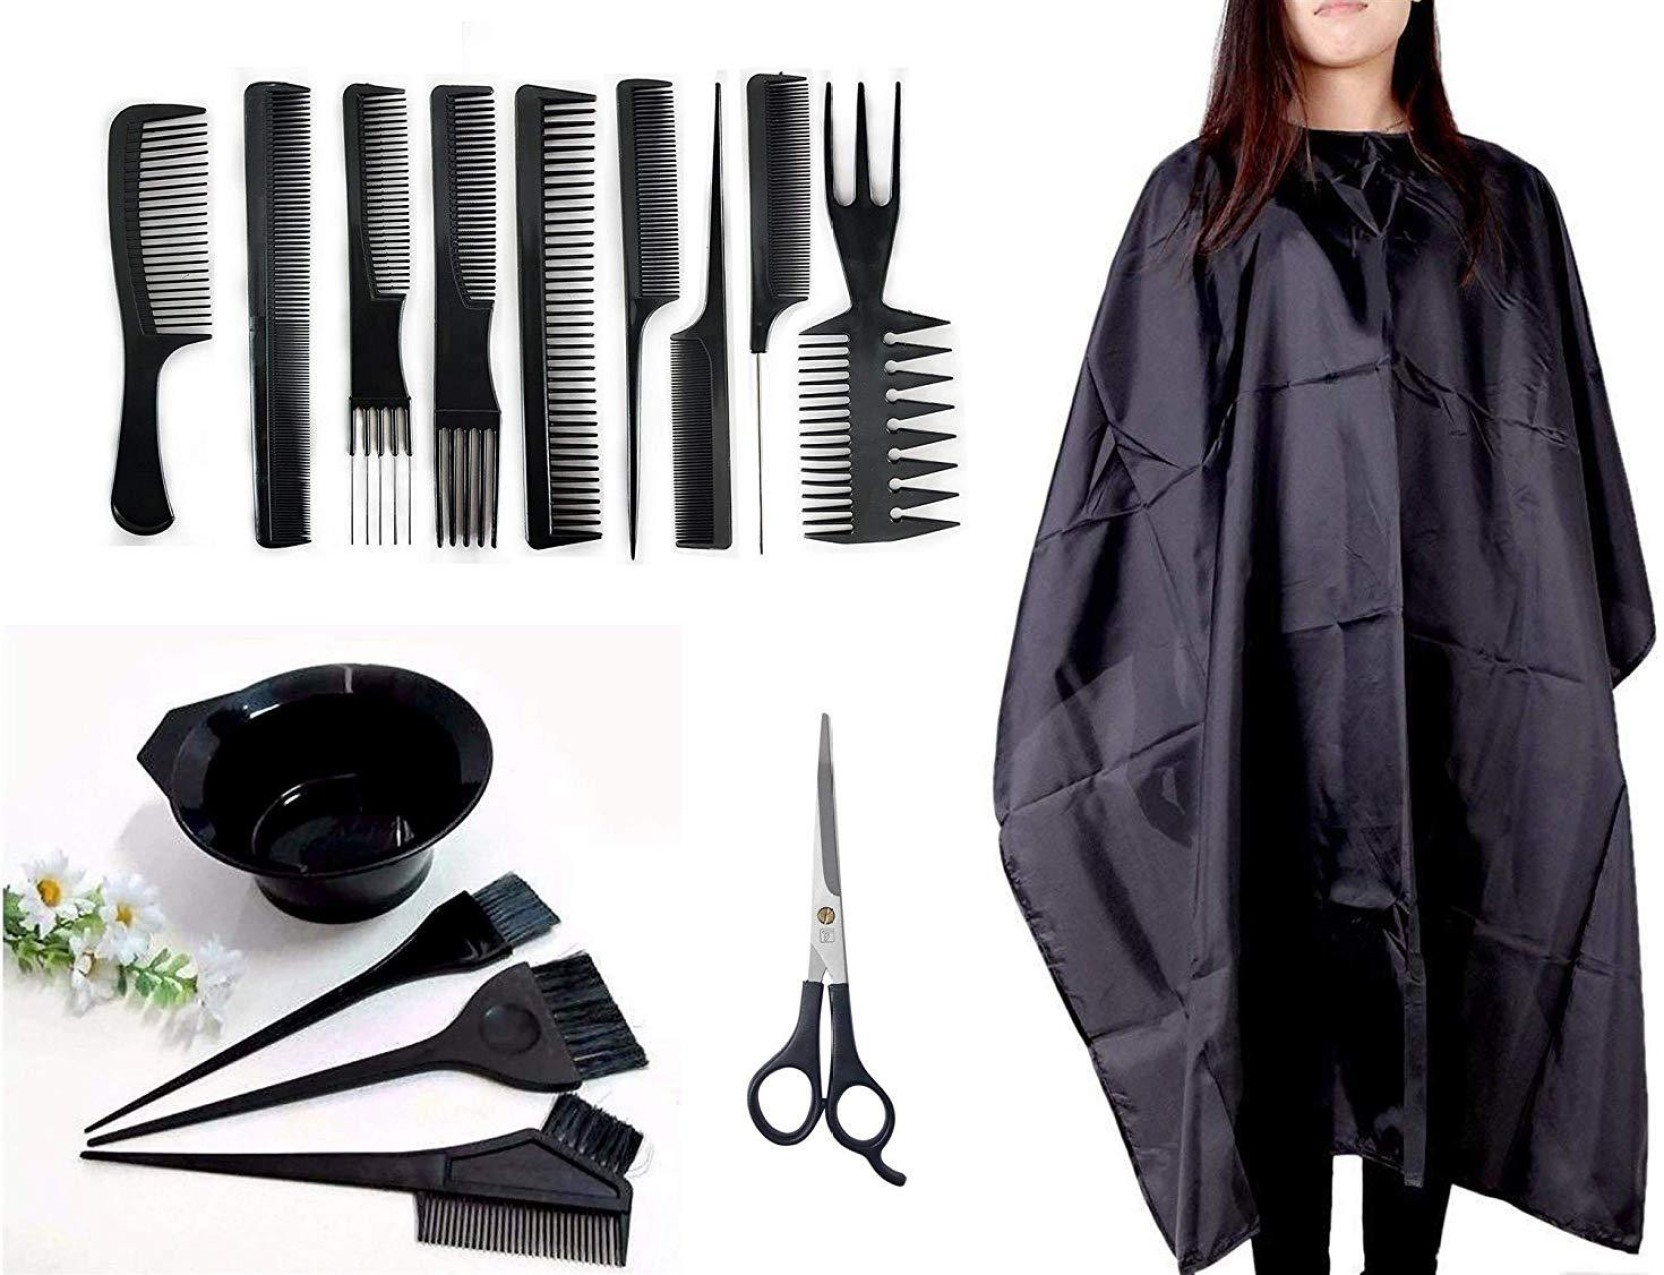 AASA Salon Accessories Combo for Hairdressing, hair Cutting Comb, Scissor,  Dye Bowls kit, 9 Pcs comb Set Professional Use